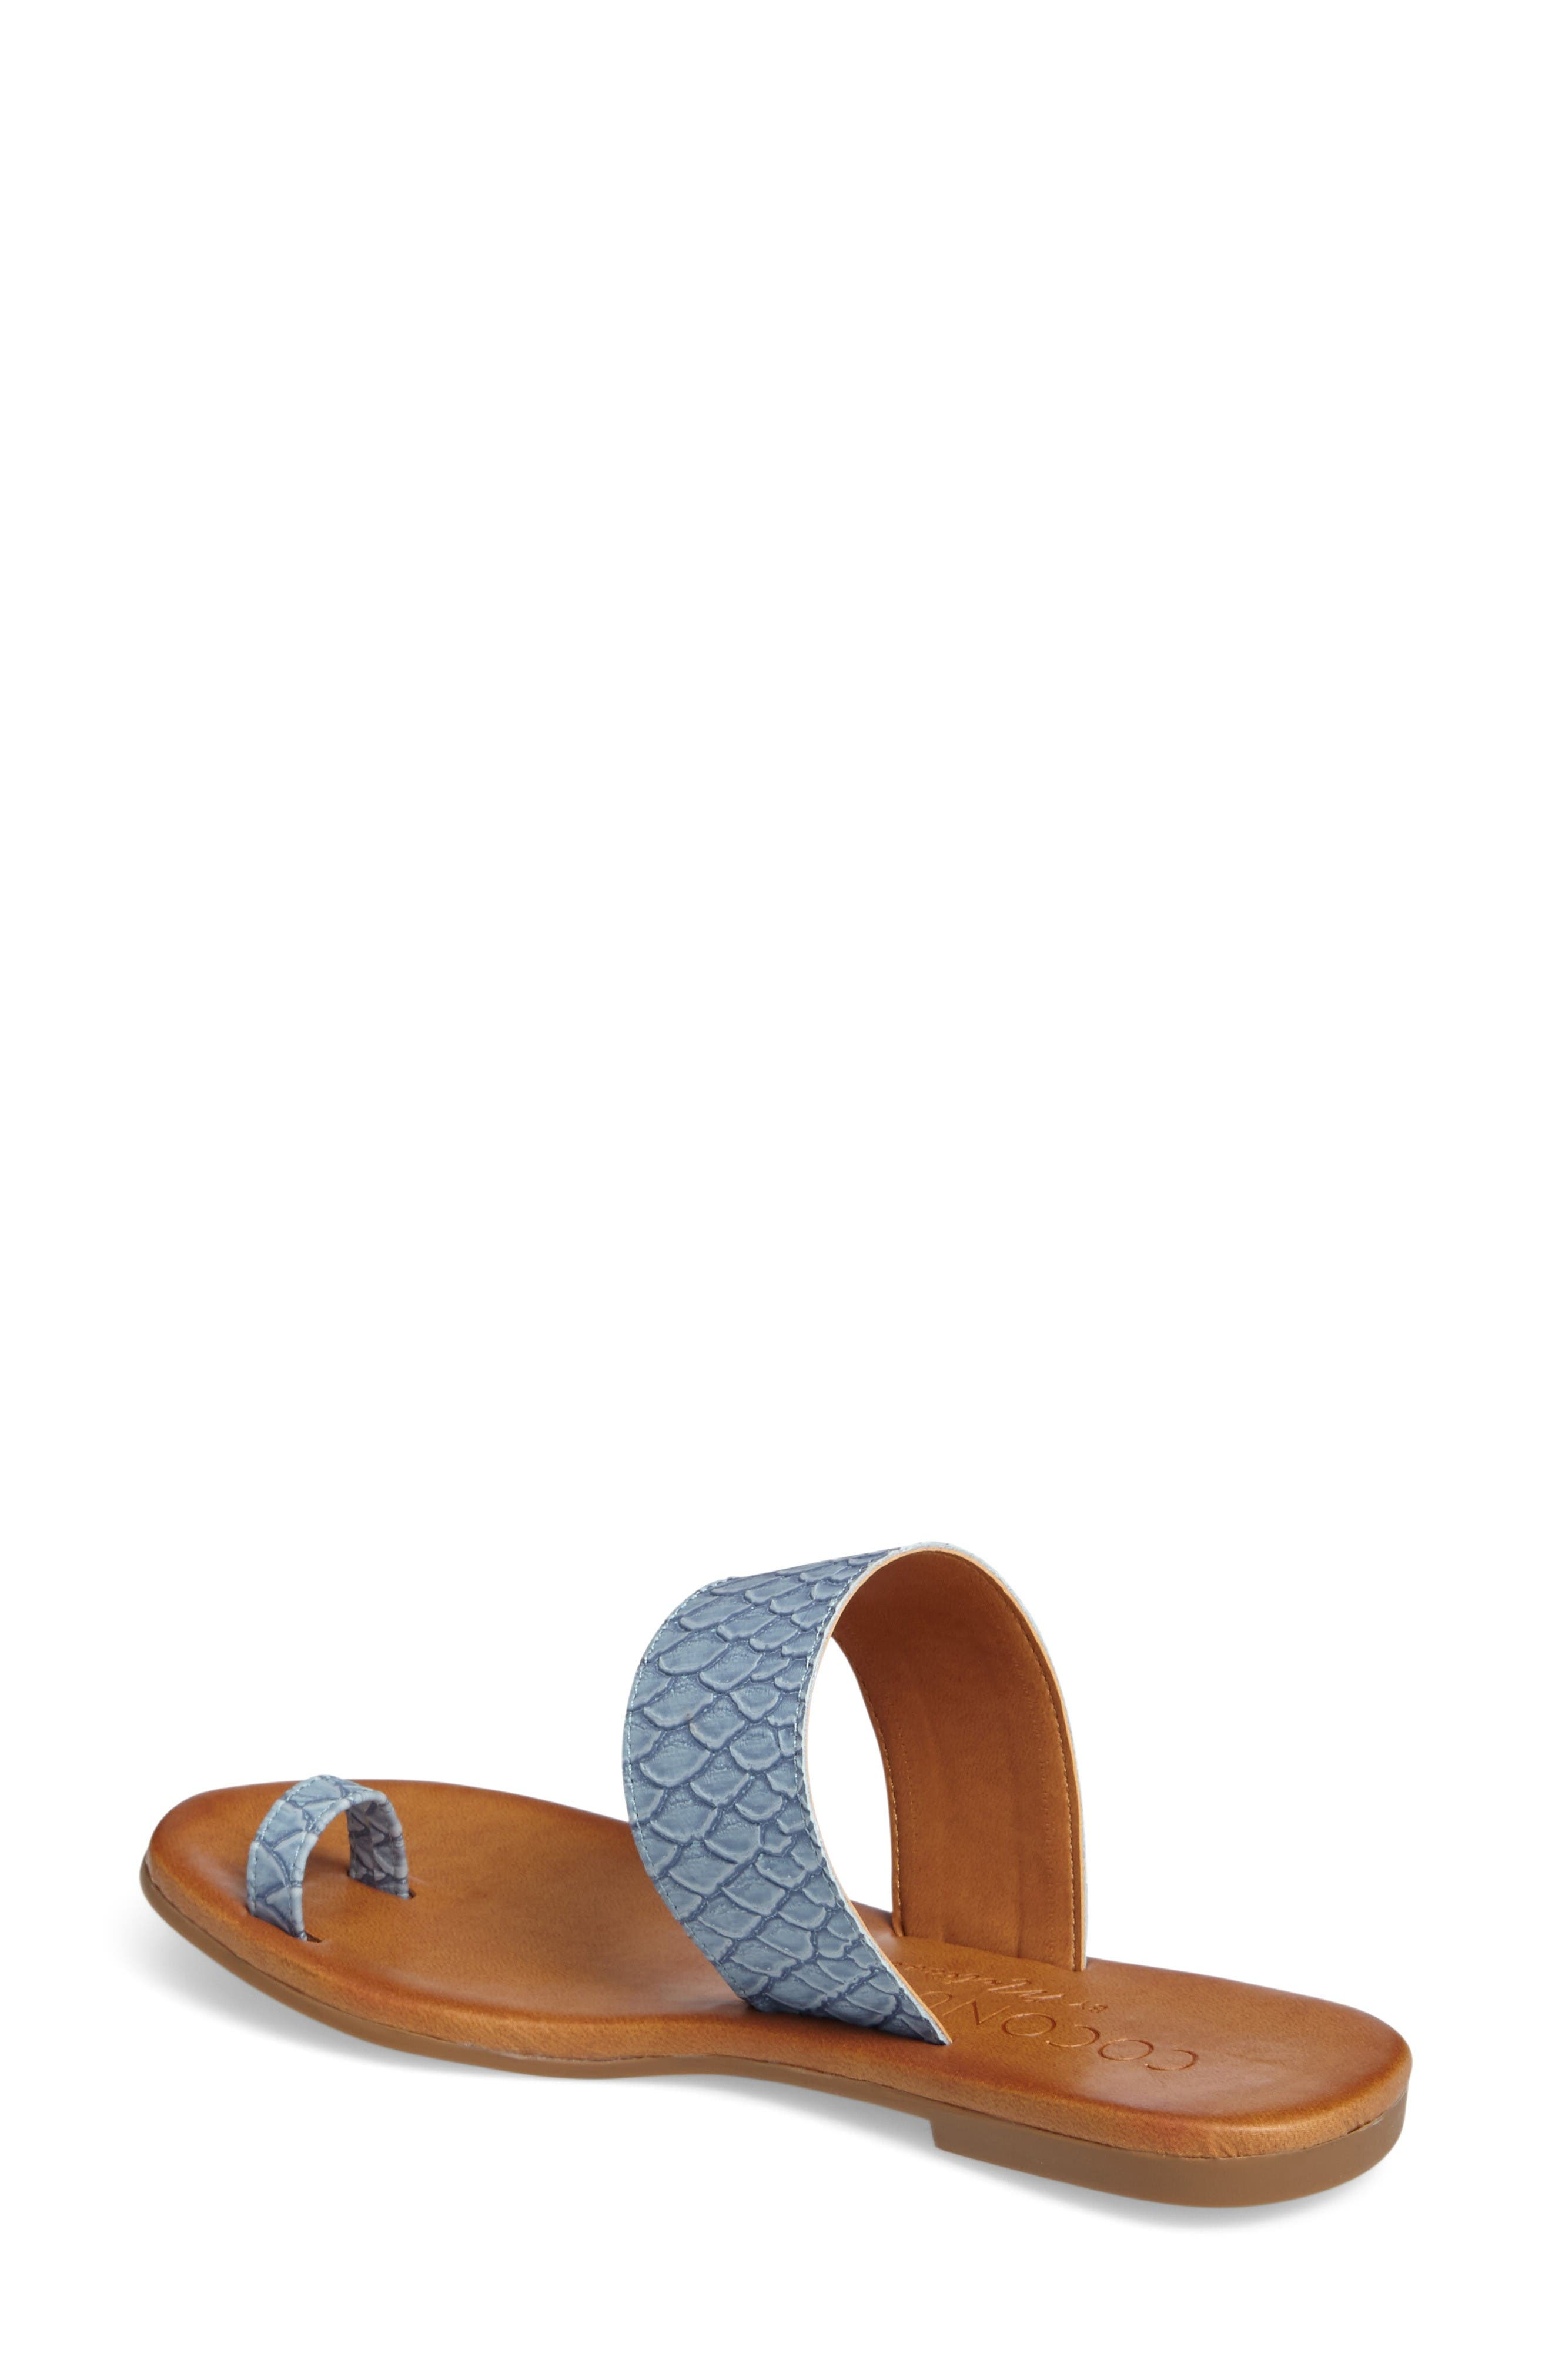 Coconuts by Matisse Freddie Slide Sandal,                             Alternate thumbnail 2, color,                             Dusty Blue Leather